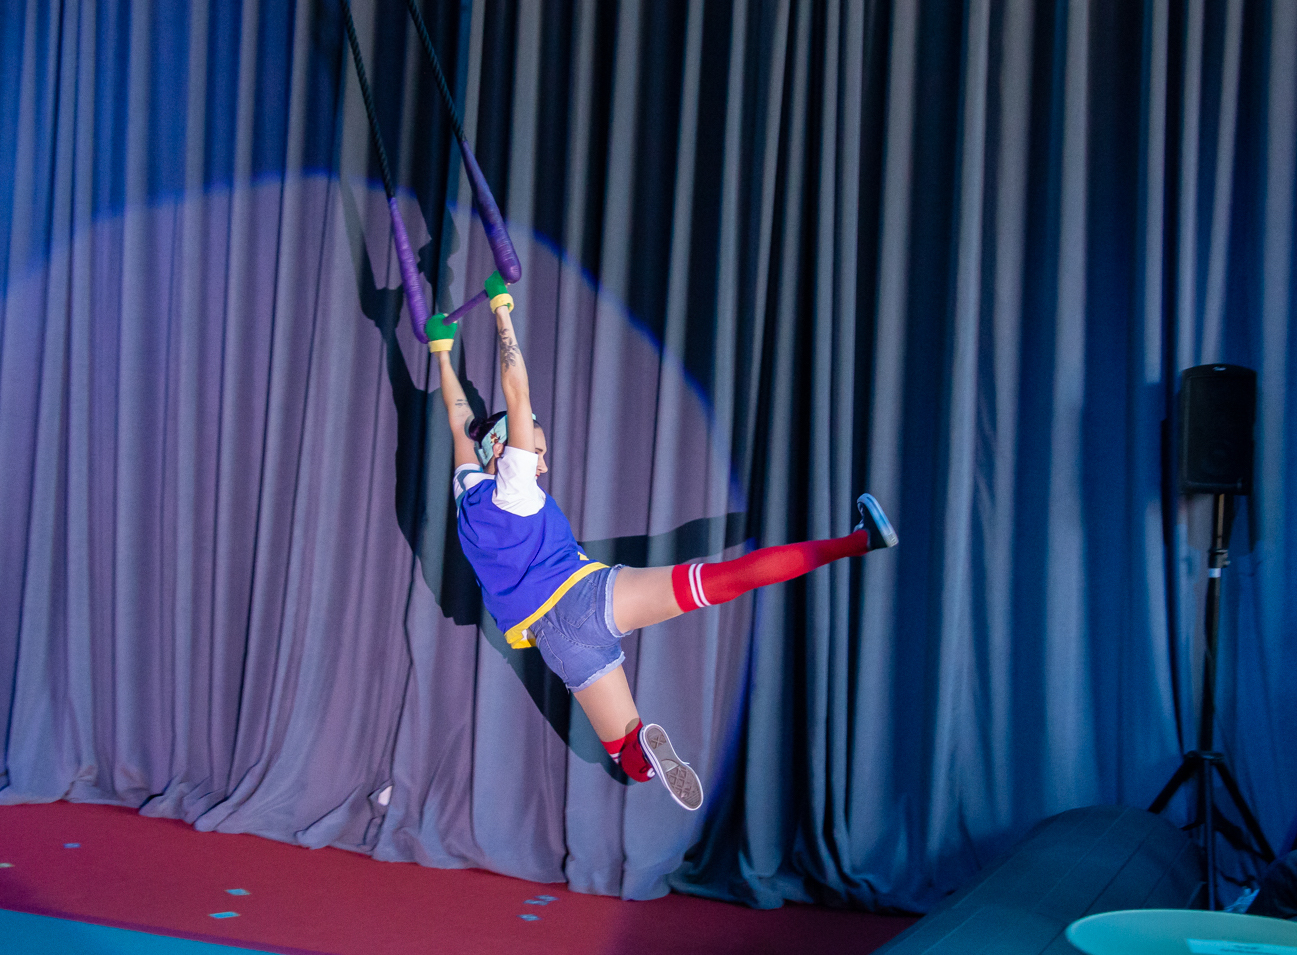 Wearing an Ash Ketchum costume, Shohreh swings on her trapeze doing a flying kick motion with her legs in the air.